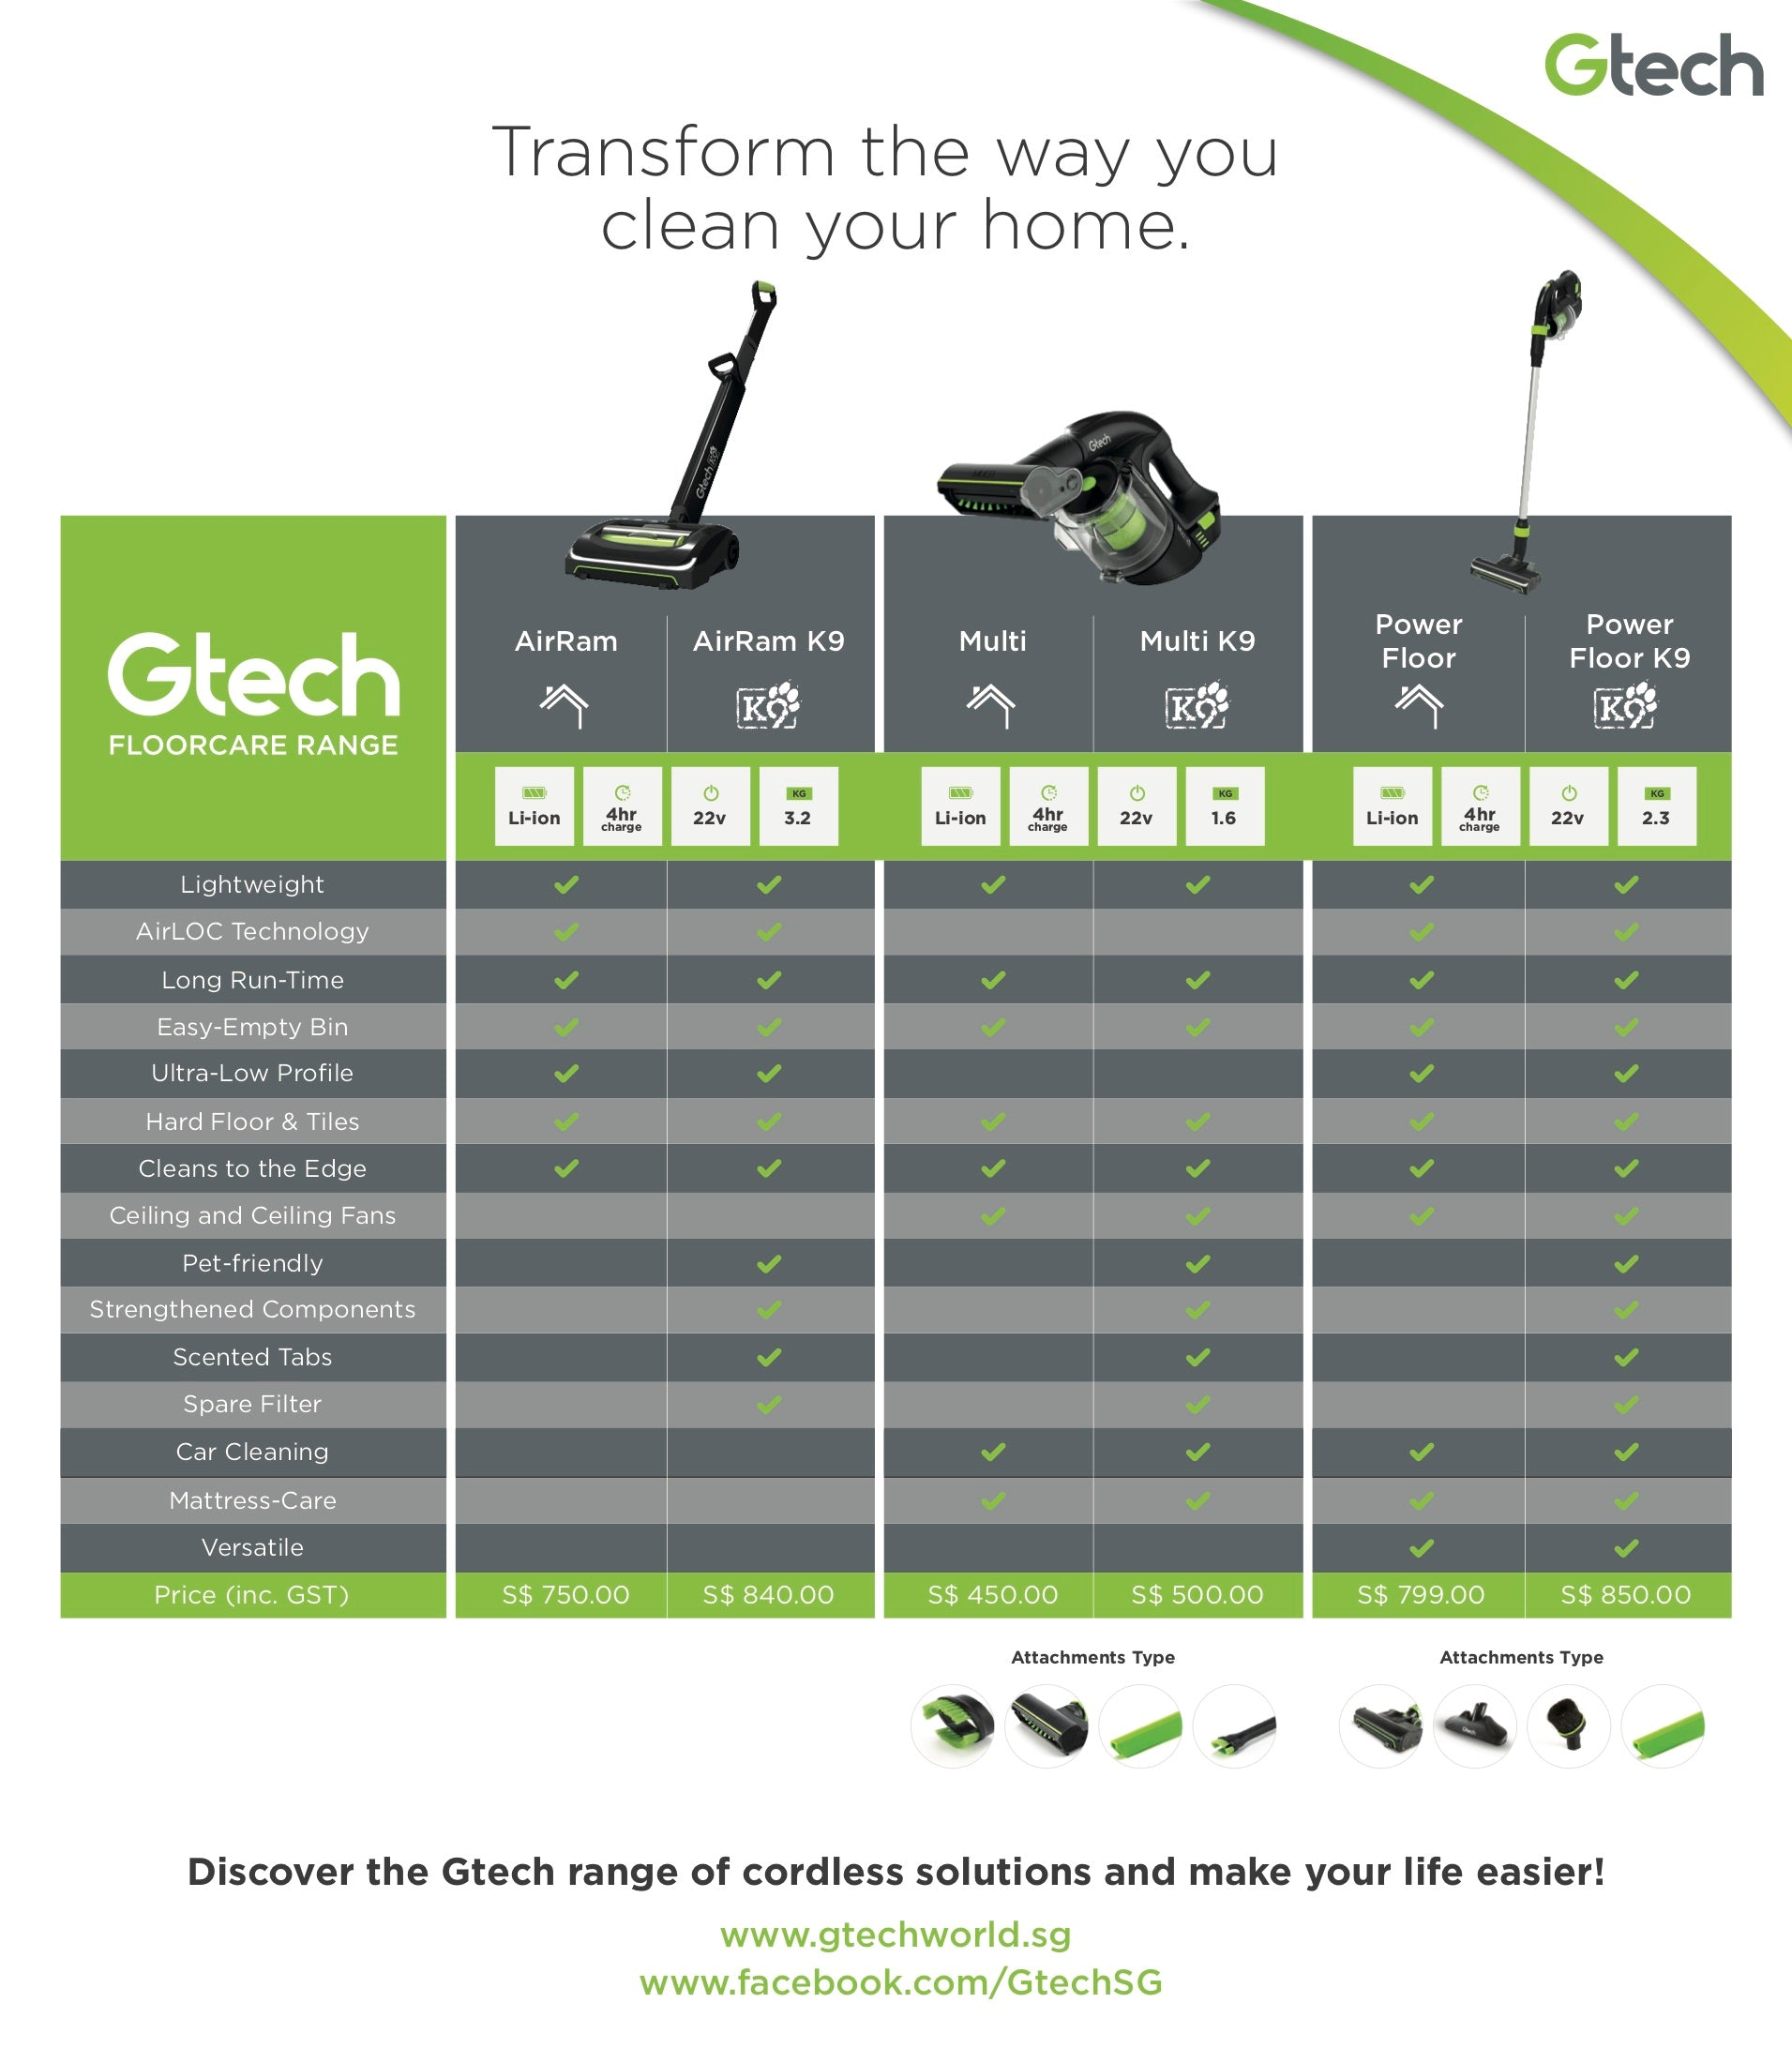 Transform the way you clean your home with Gtech vacuum cleaners